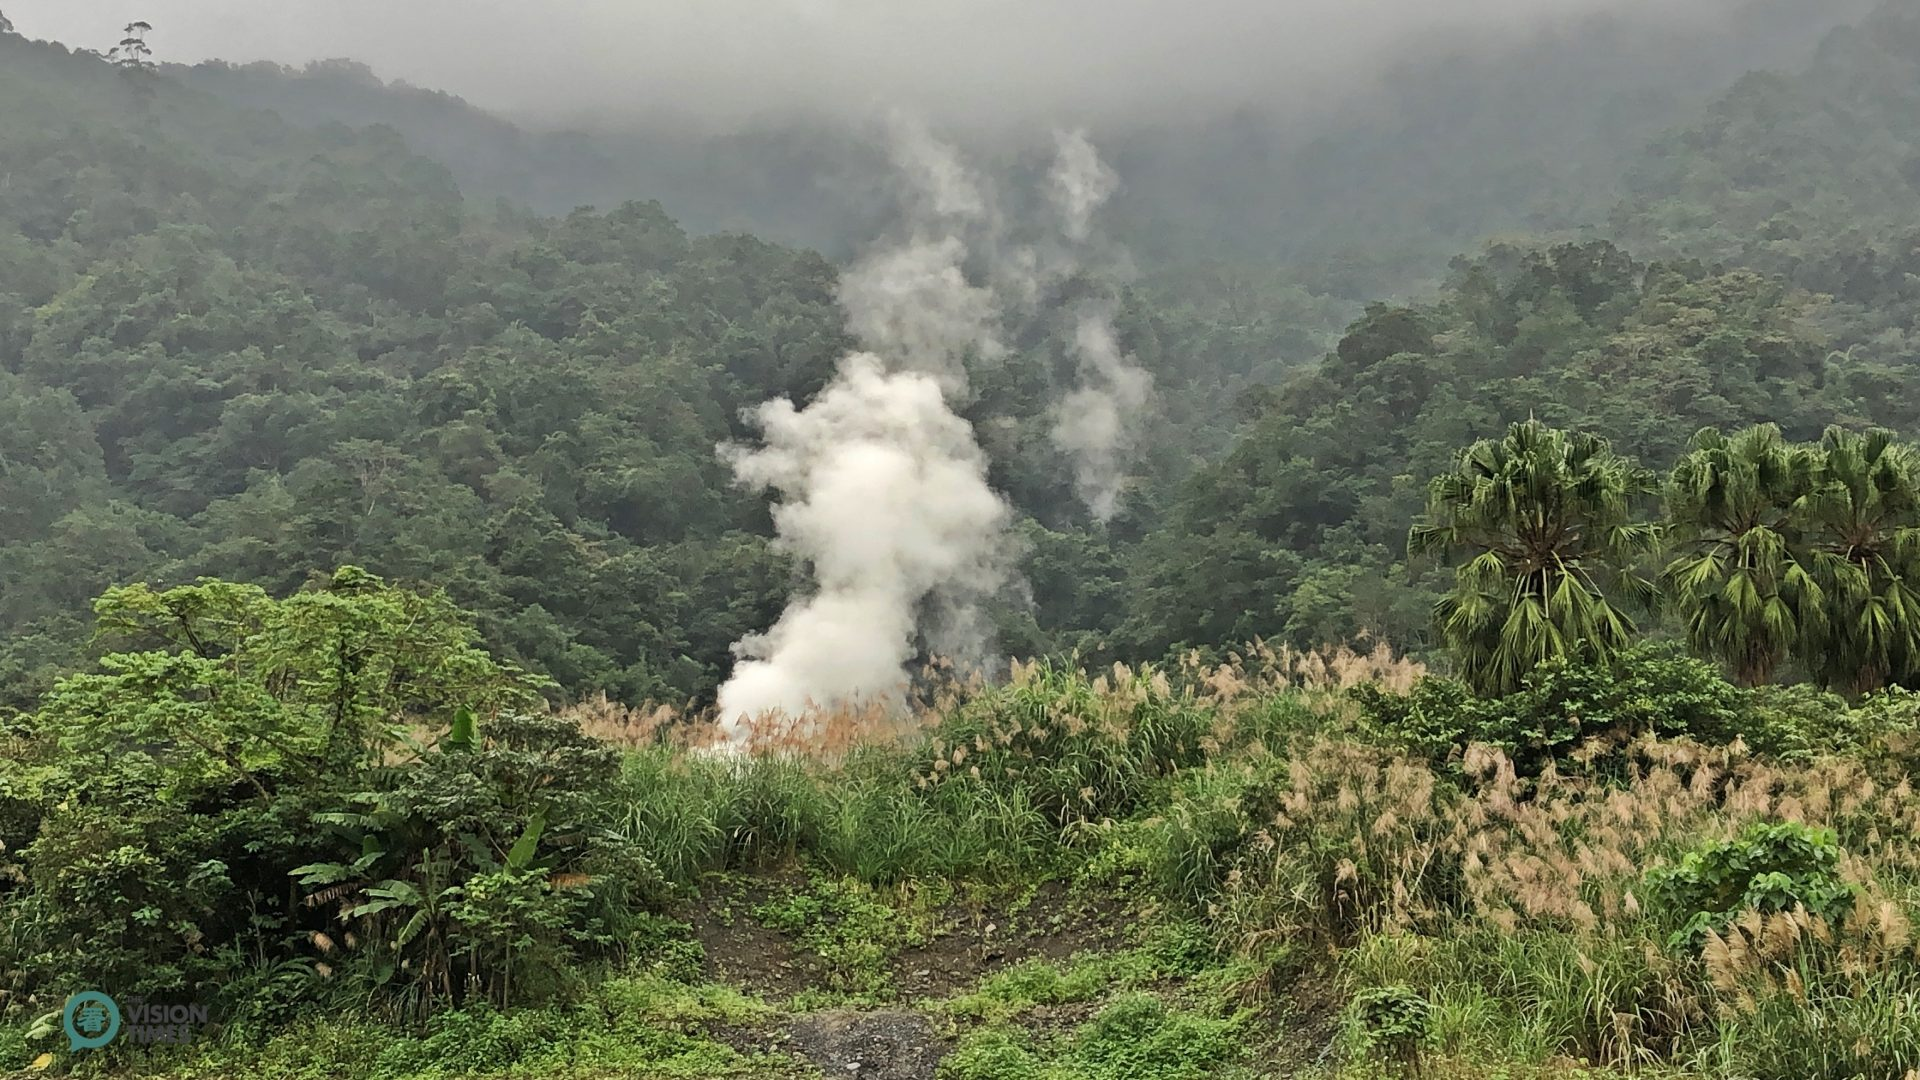 The vicinity of Qingshui Geothermal Park is rich in geothermal resources. (Image: Billy Shyu / Vision Times)